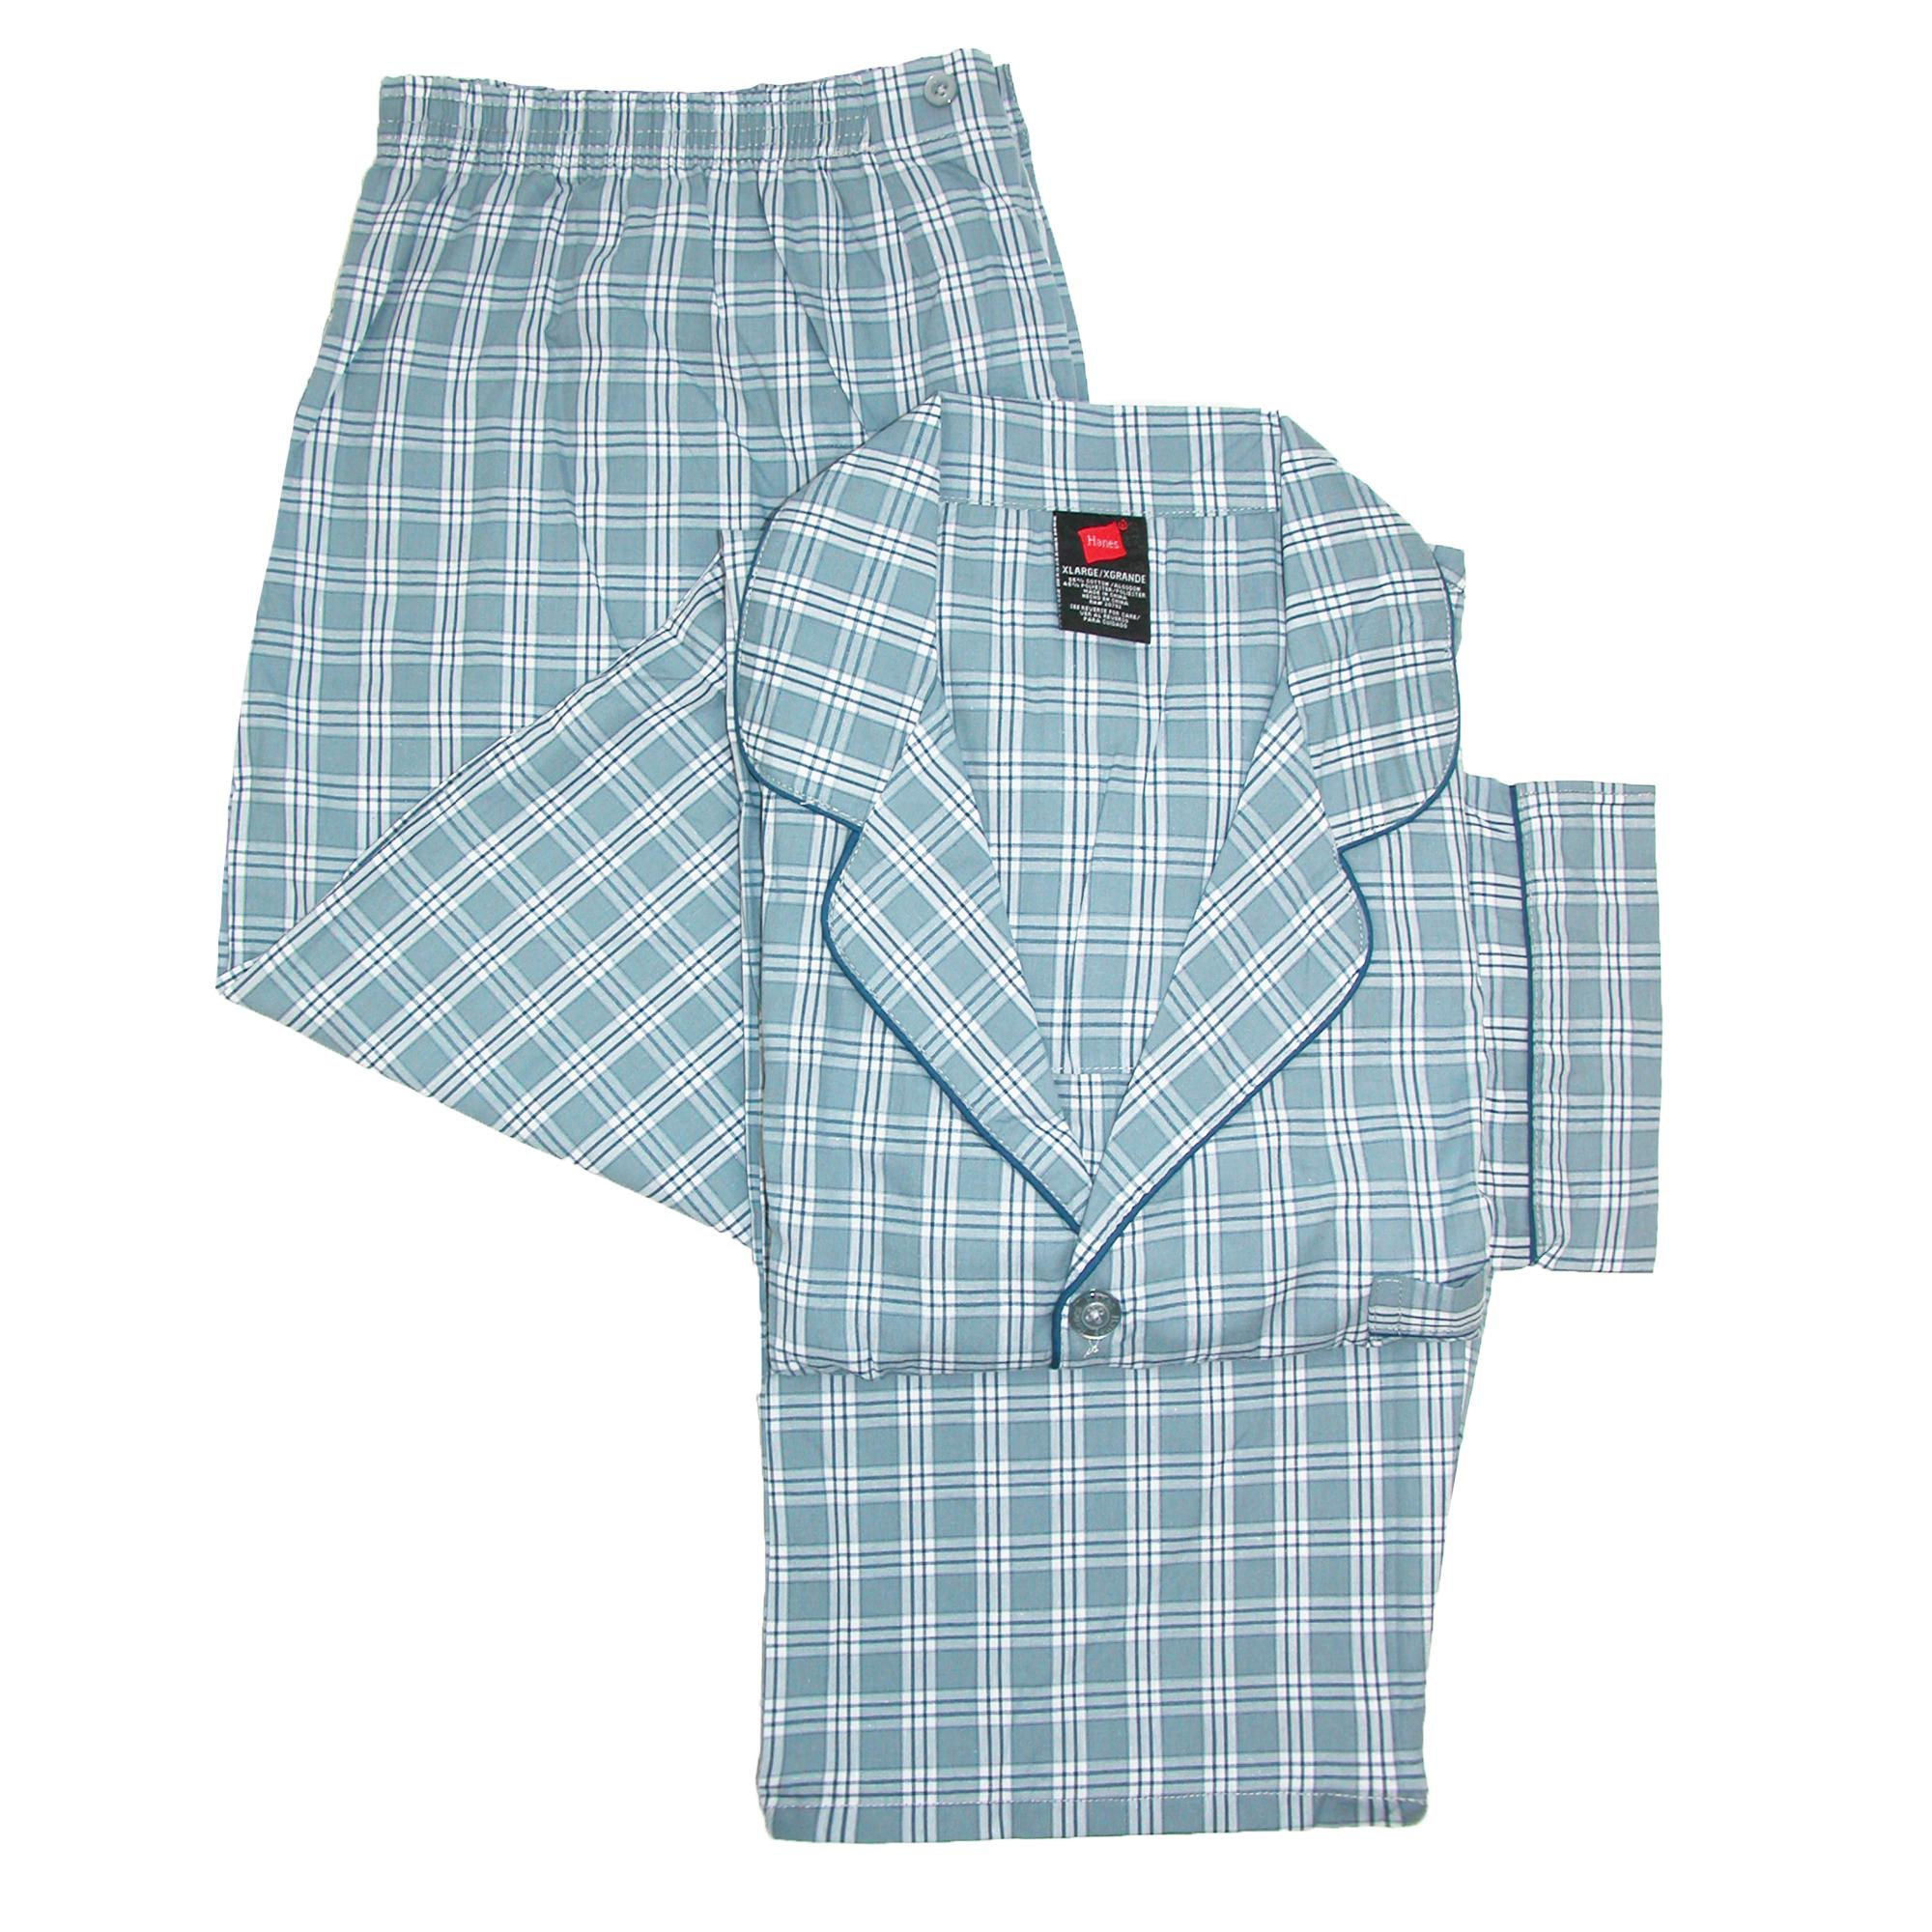 Shop Lands' End mens sleepwear for a selection of super-comfortable mens pajamas and robes. Available in a range of fabrics for temperatures chilly or steamy.